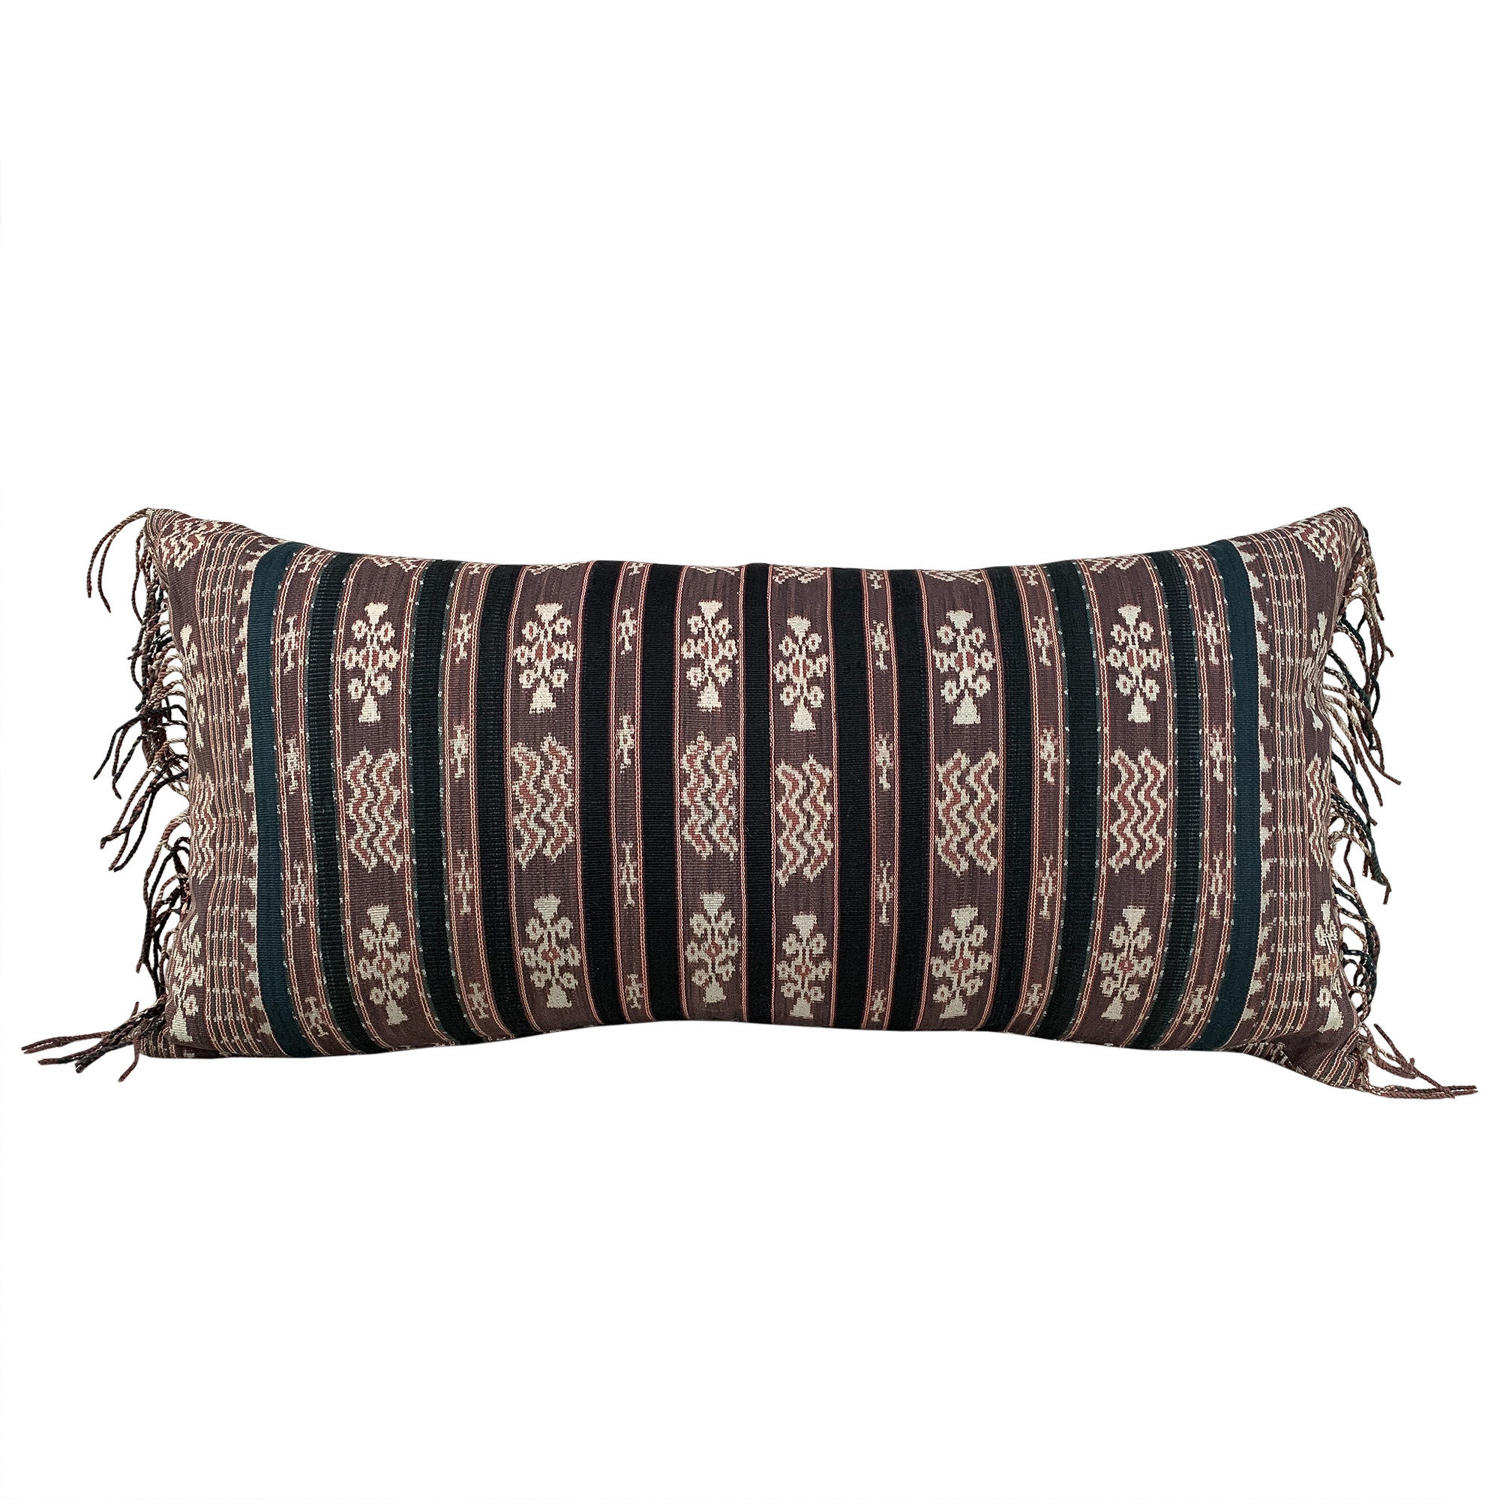 Jumbo Savu Ikat Cushion